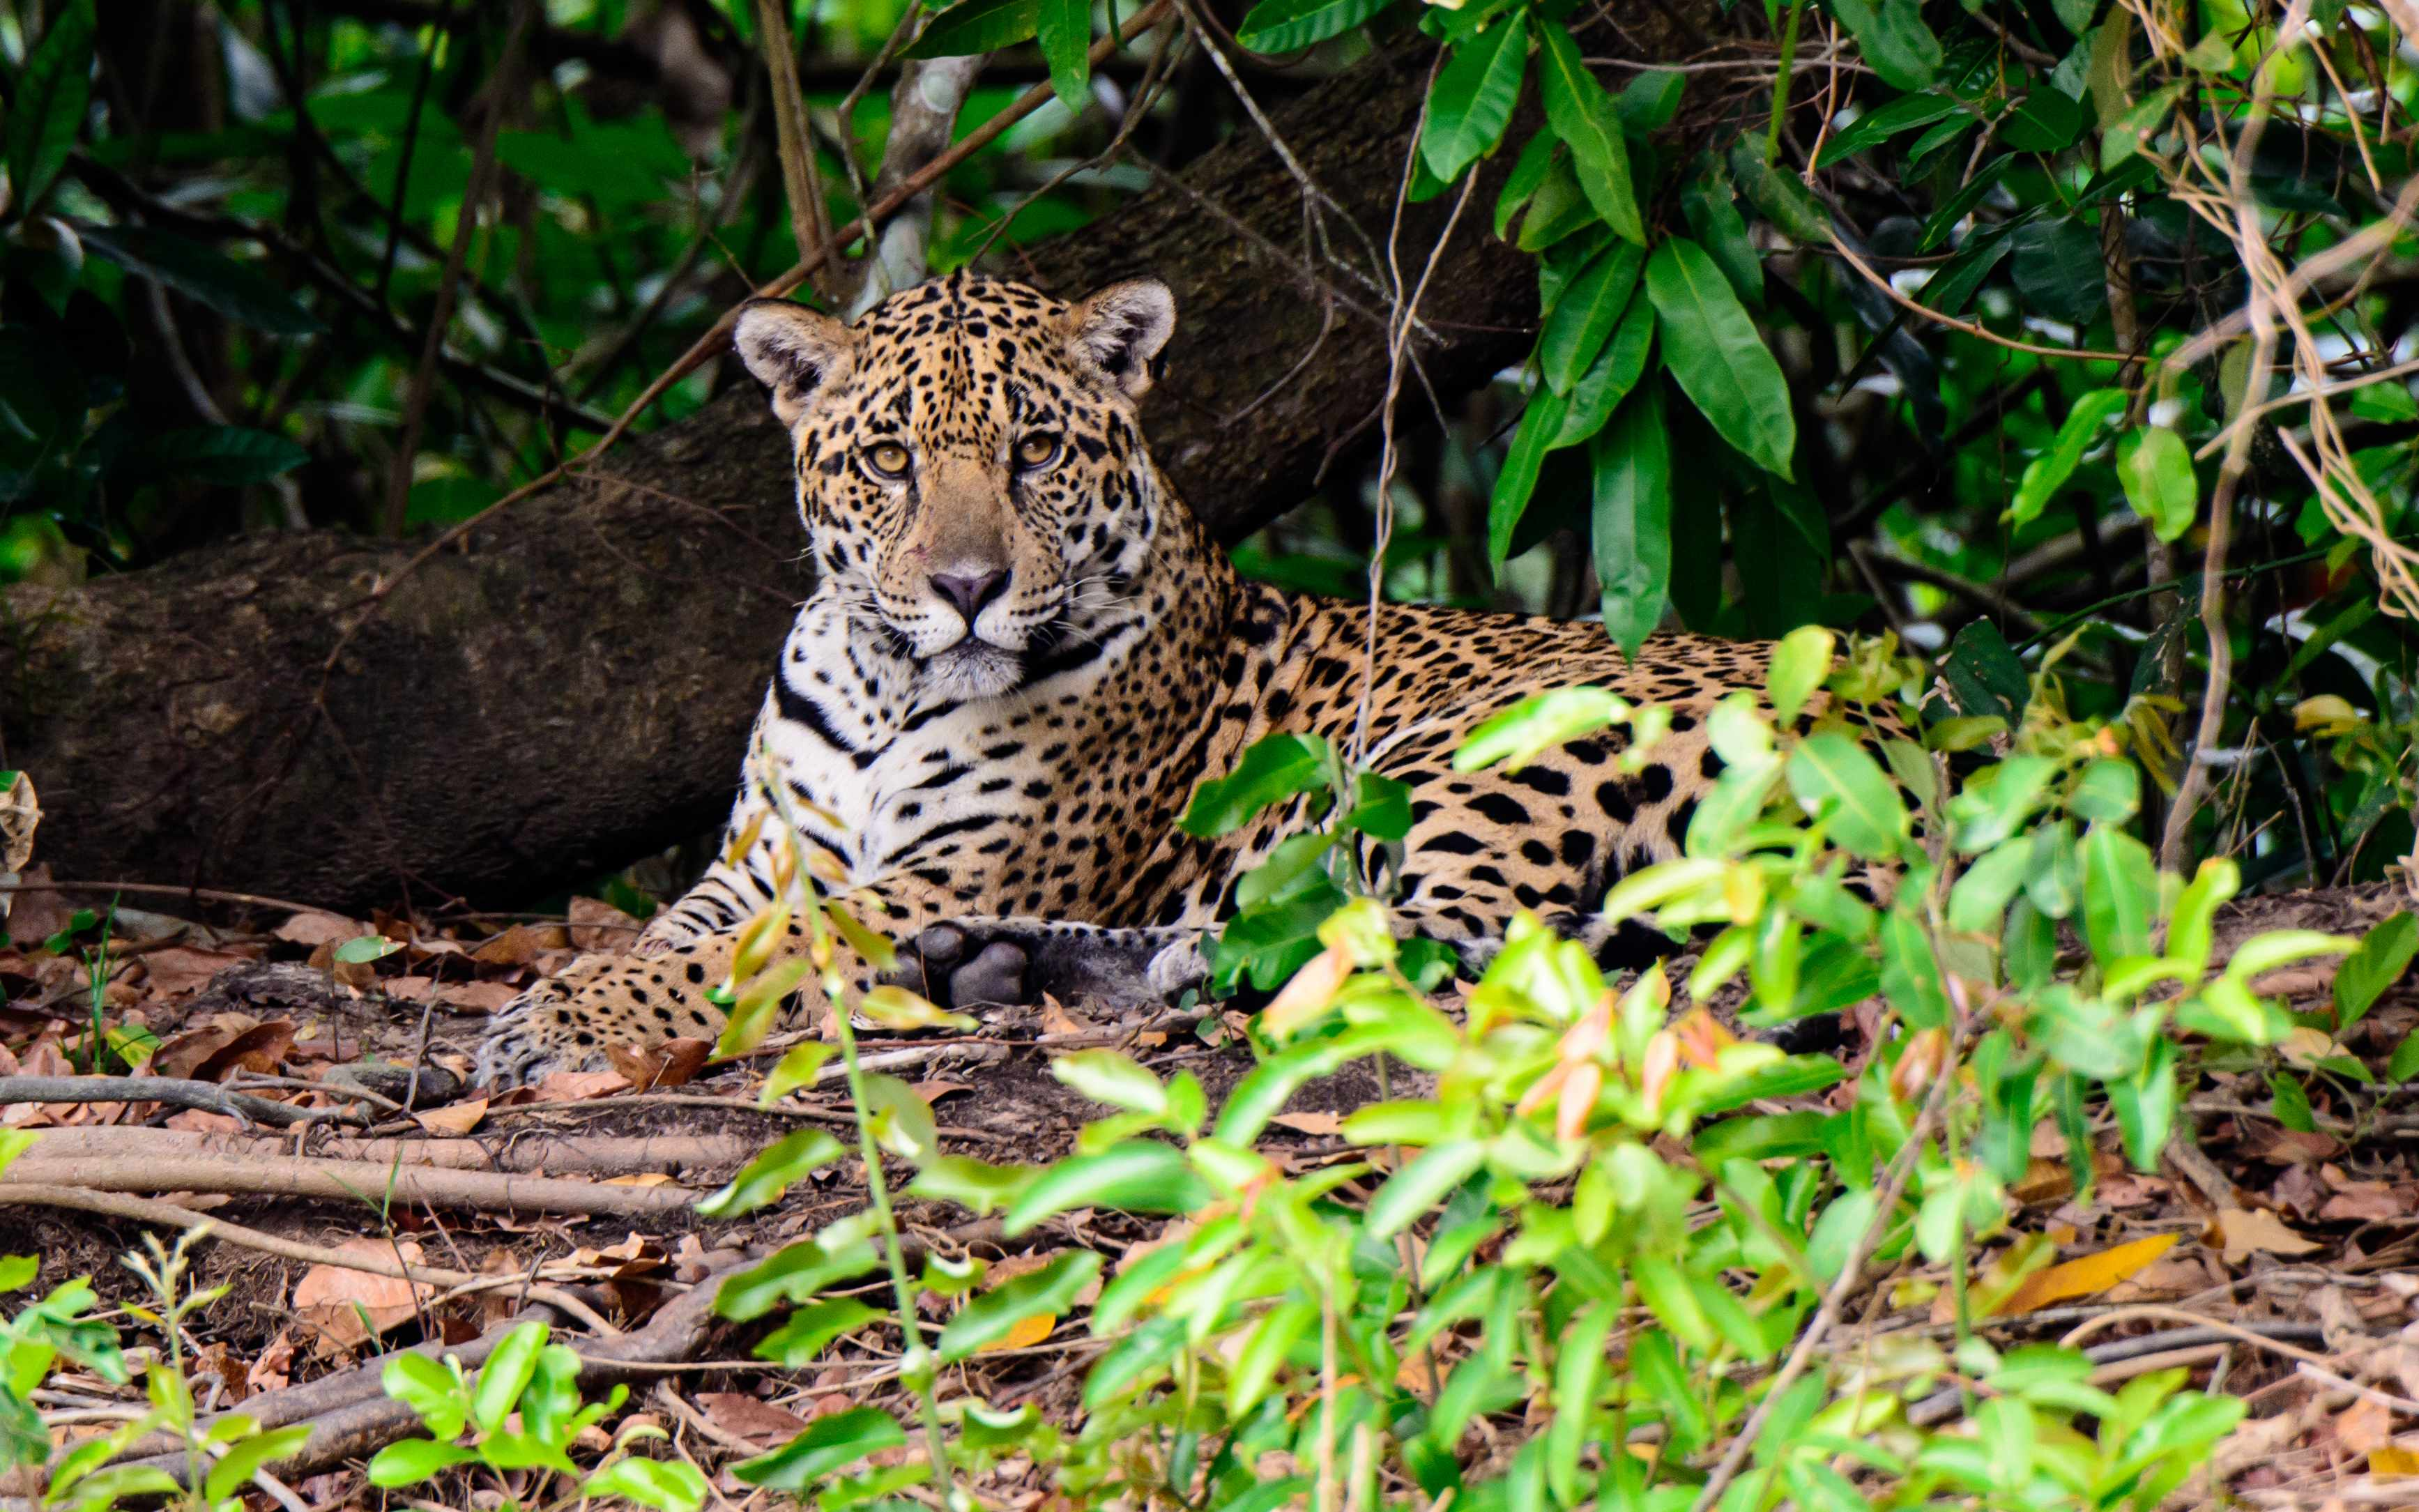 Adult jaguar on the edge of a river in the rainforest